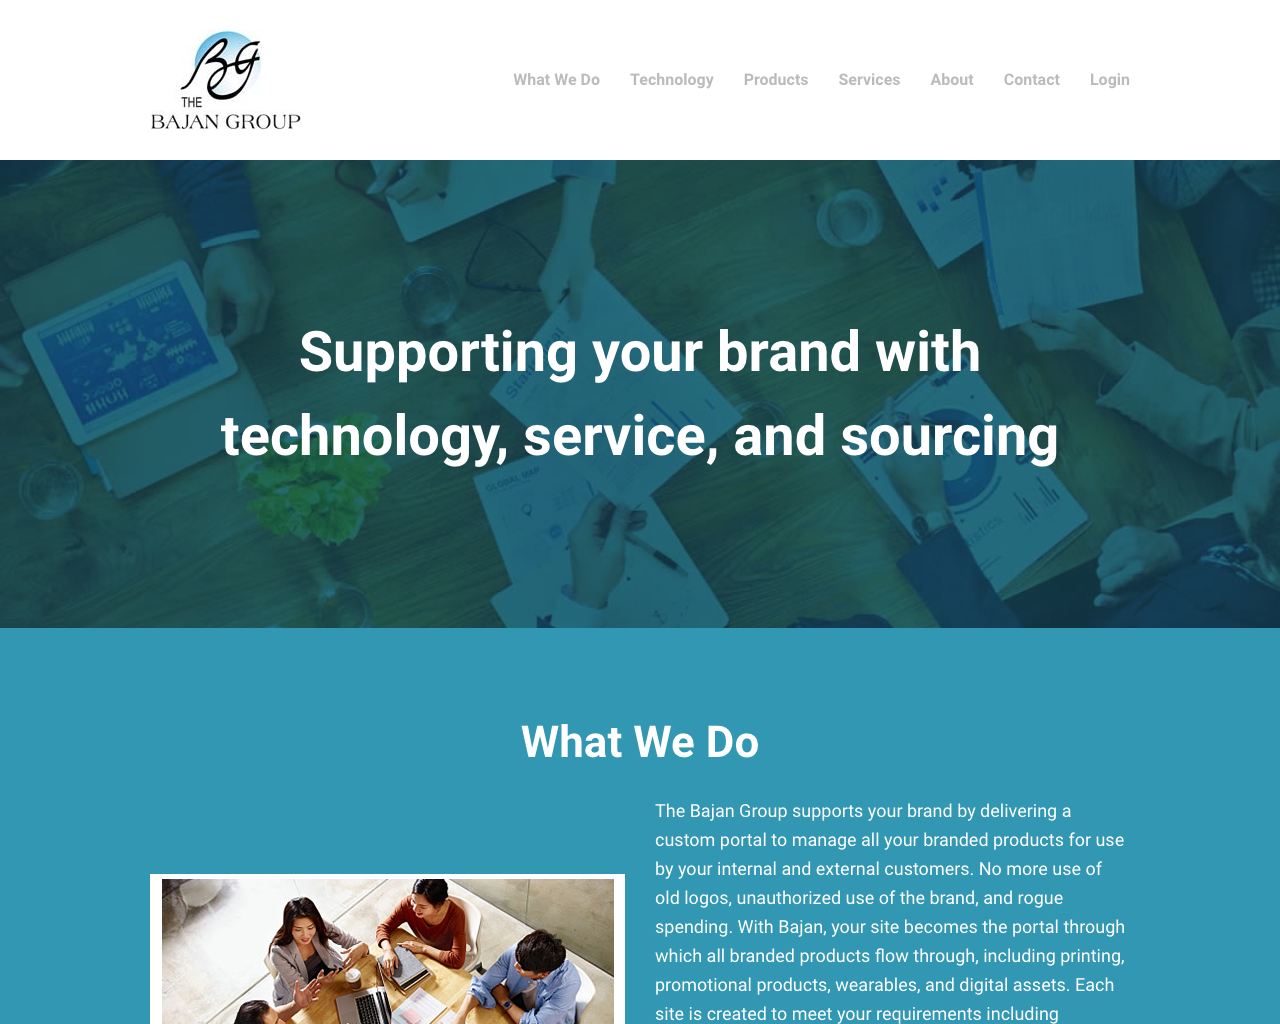 The Bajan Group - Web design, content creation